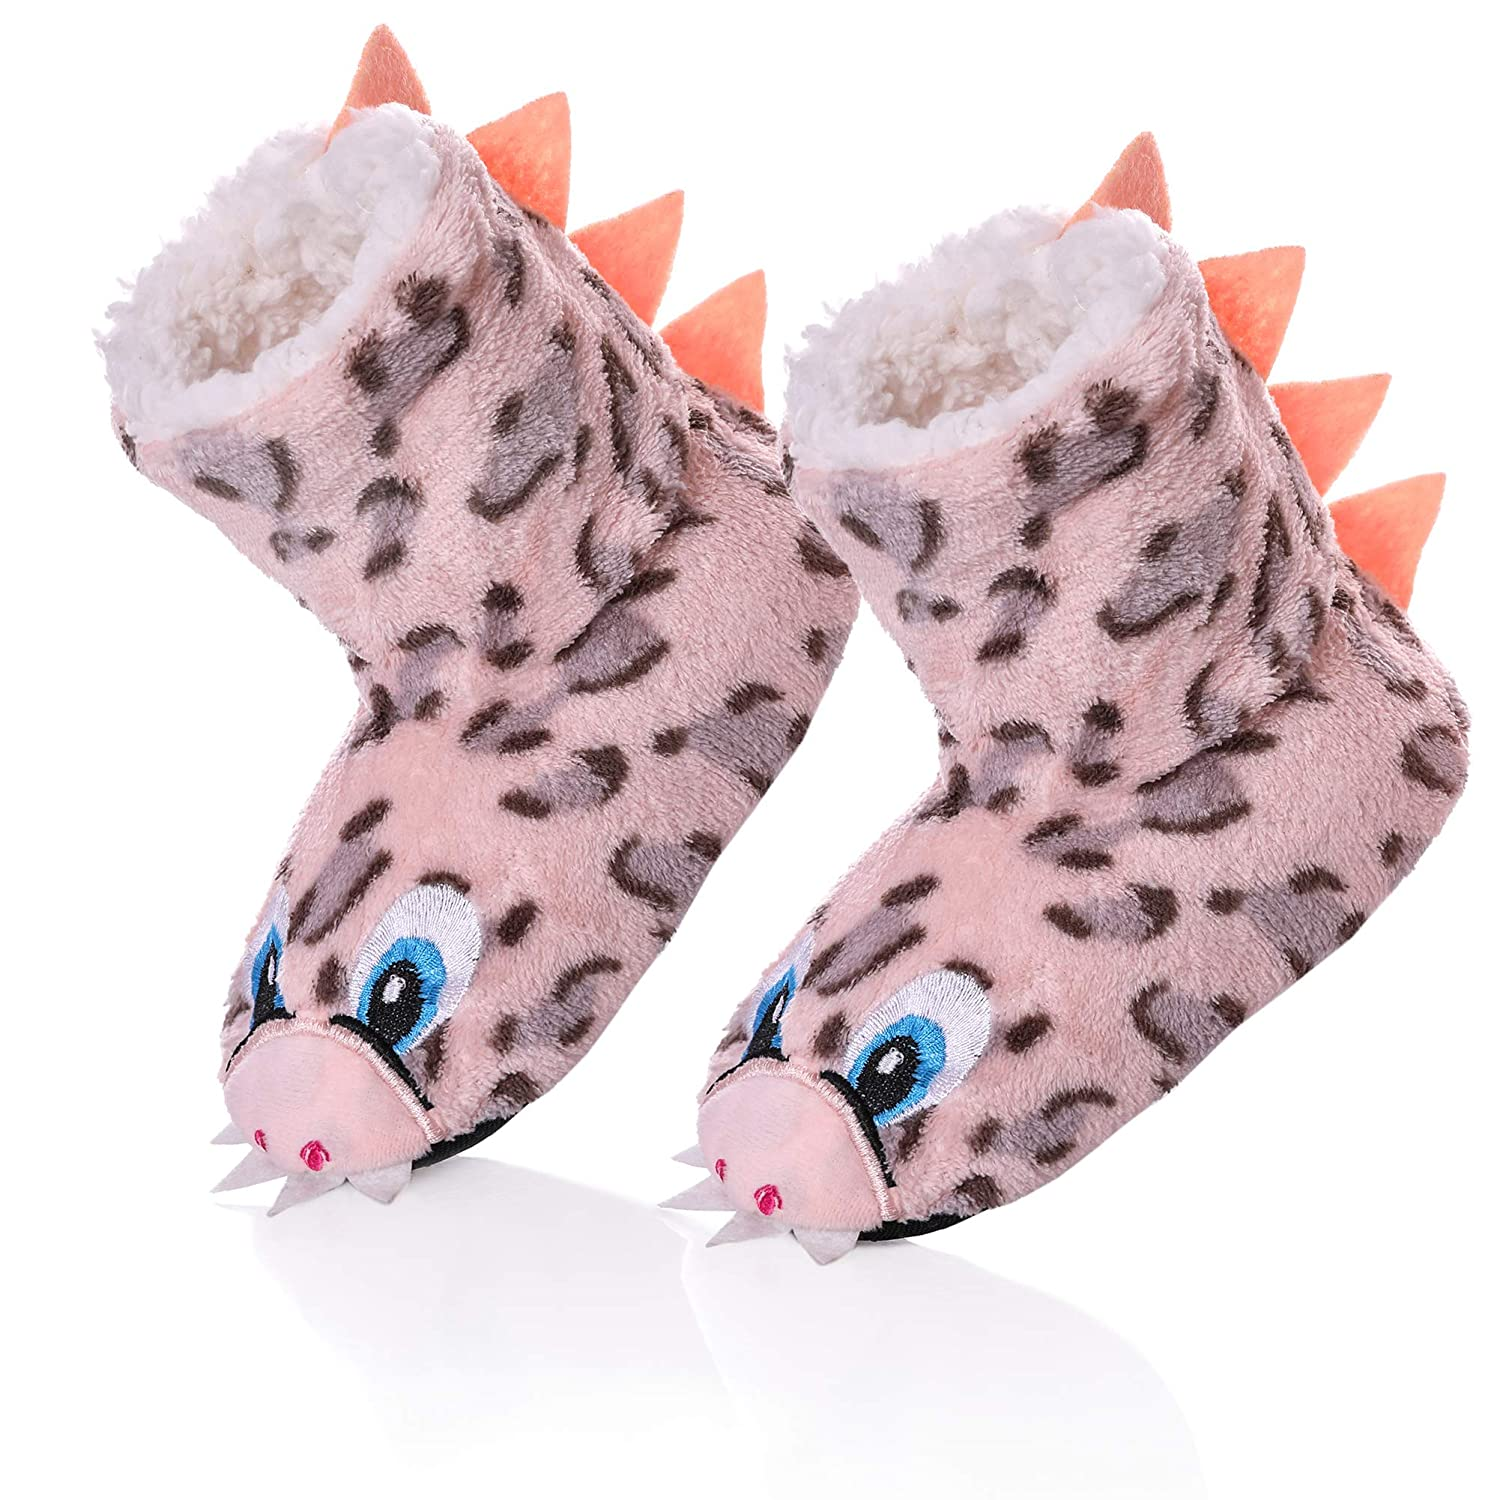 RONGBLUE Kids Boys Girls House Slippers Cute Animal Soft Warm Plush Lining Non-Skid Floor Shoes Winter Boots